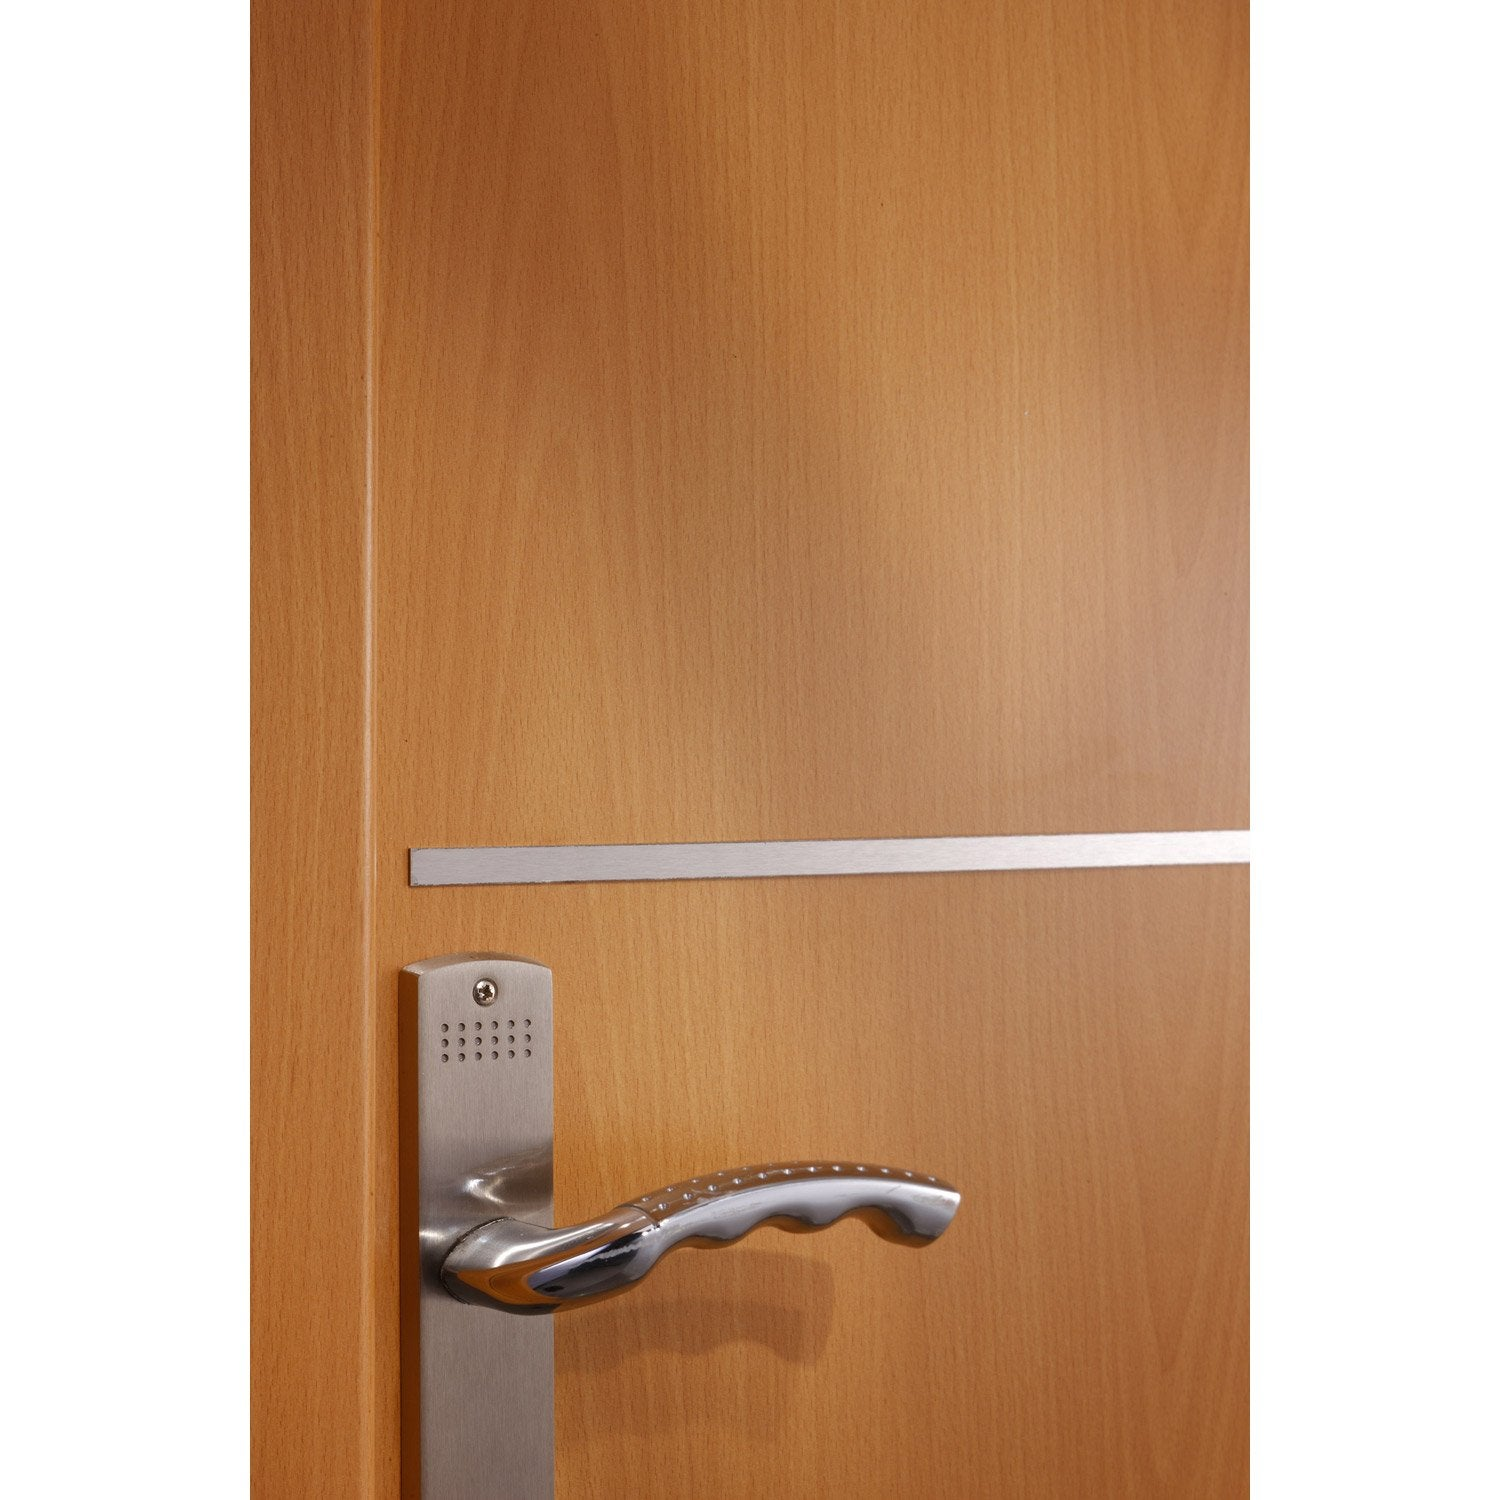 Lot de 4 listels recoupable pour porte de 83 cm inox leroy merlin - Les decoratives leroy merlin ...